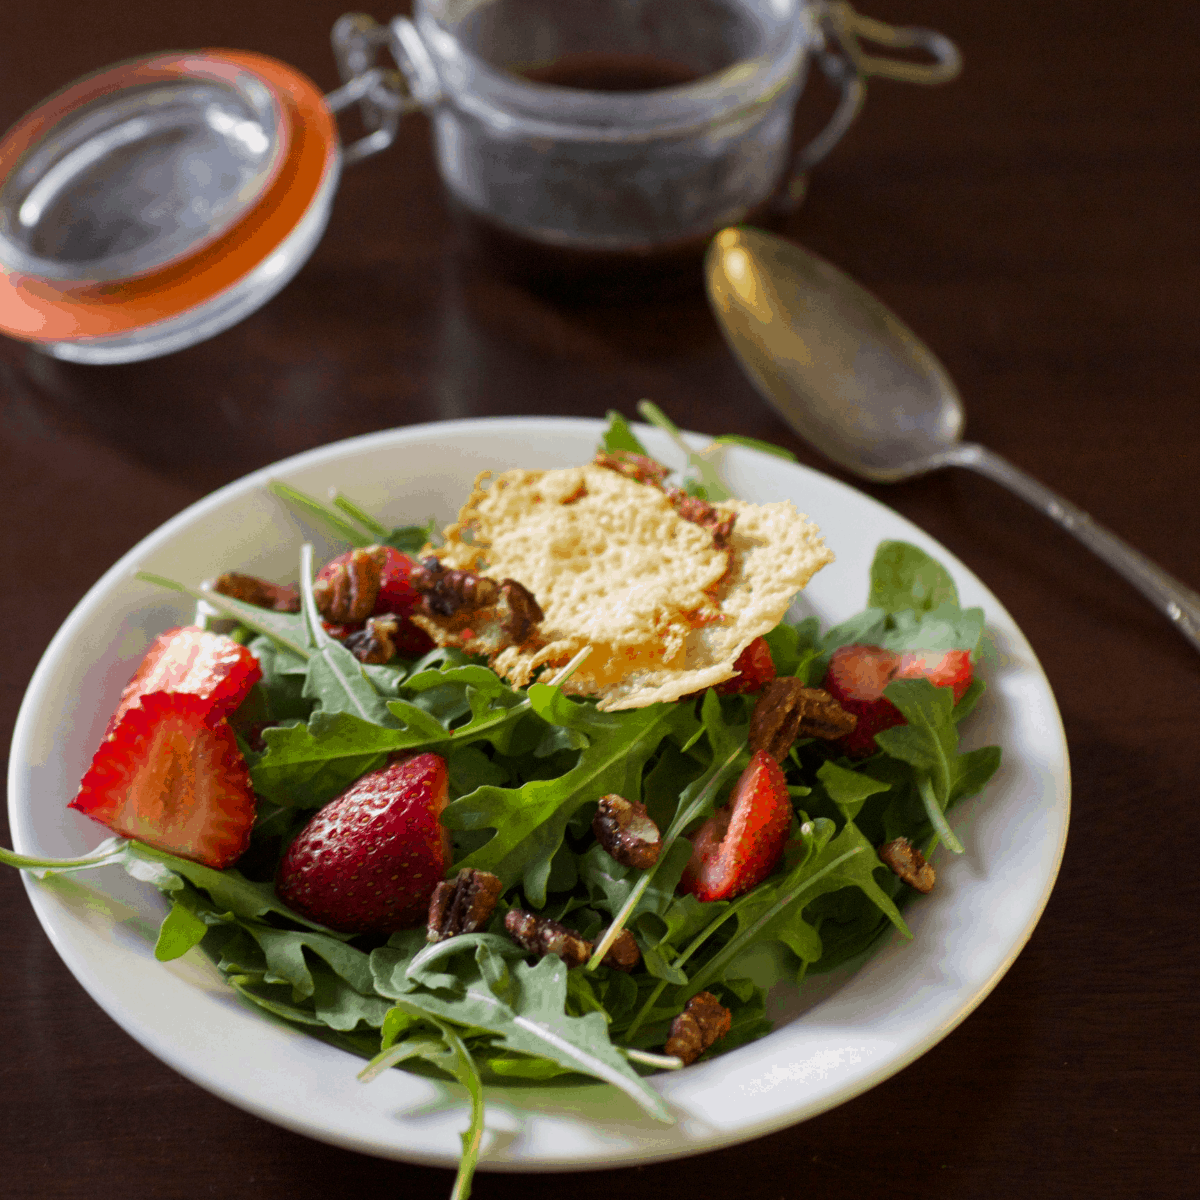 In Season Now: Strawberries and Asparagus